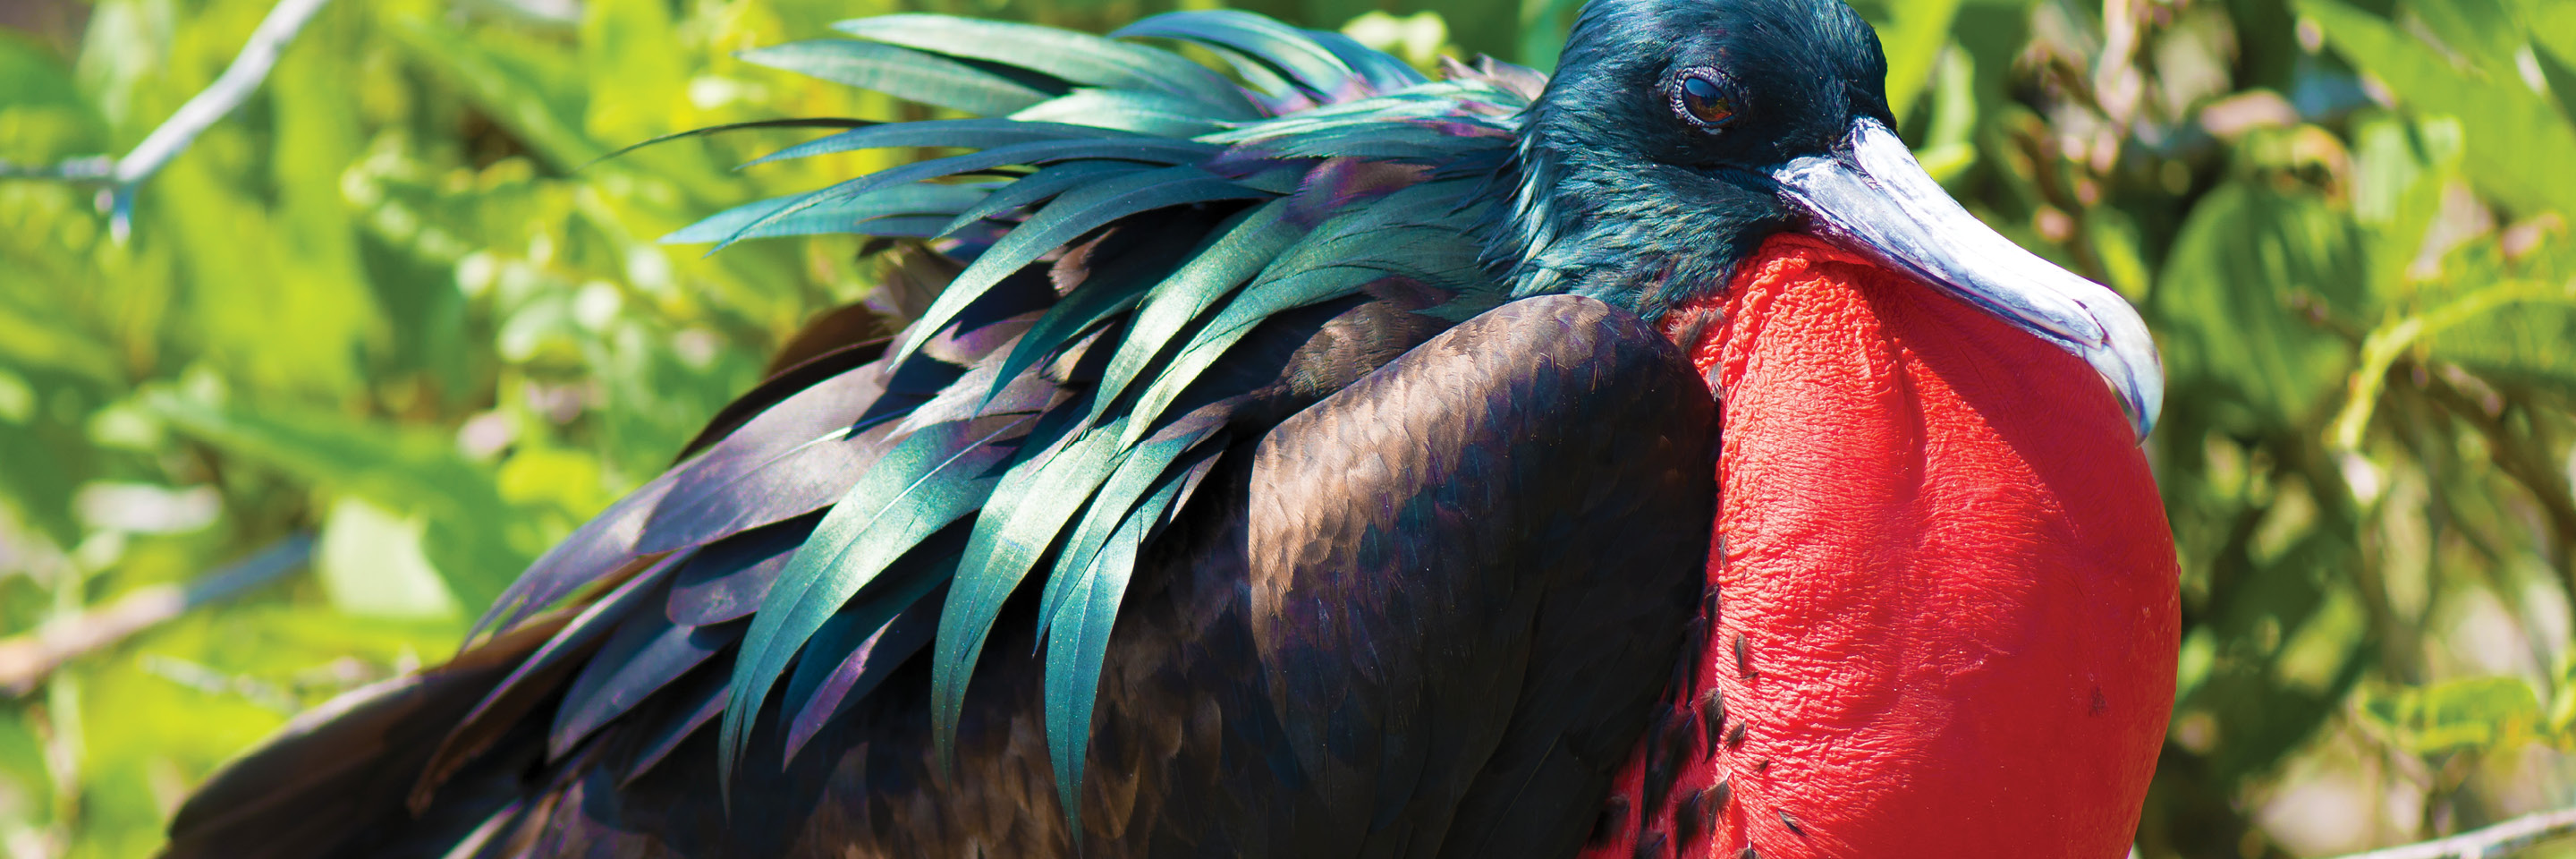 Mysteries of the Inca Empire with Peru's Amazon & Galapagos Cruise